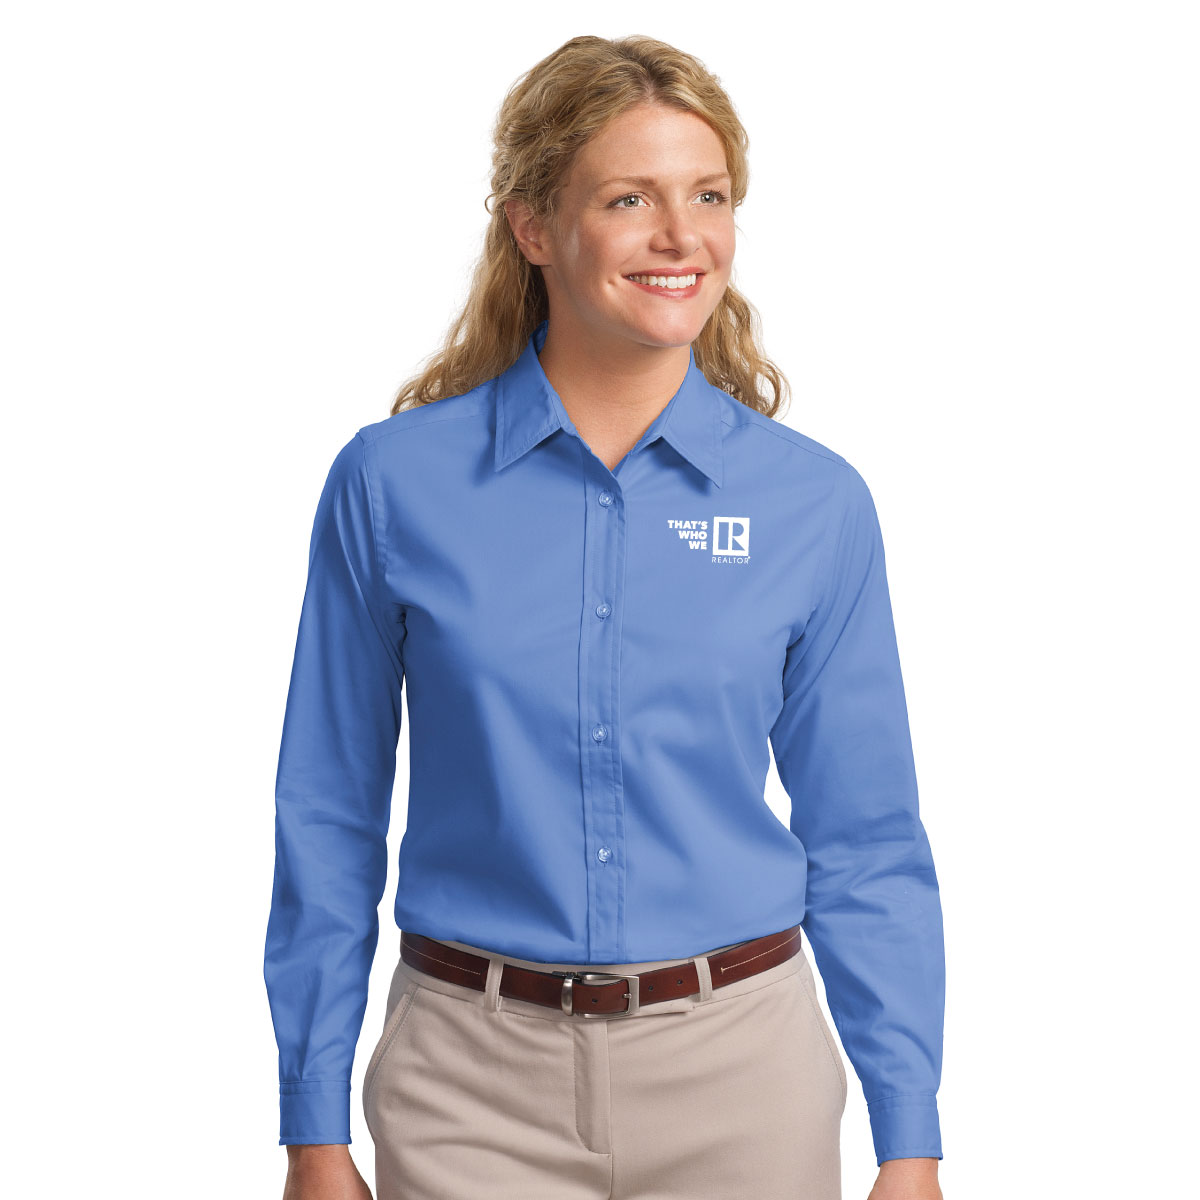 """Thats Who We R"" Ladies Long Sleeve Easy Care Shirt Twwr,Thats,Whos,Wes,Ares,Twills,ButtonDowns,Dress,Shirts,Collars,Tall,Woven"